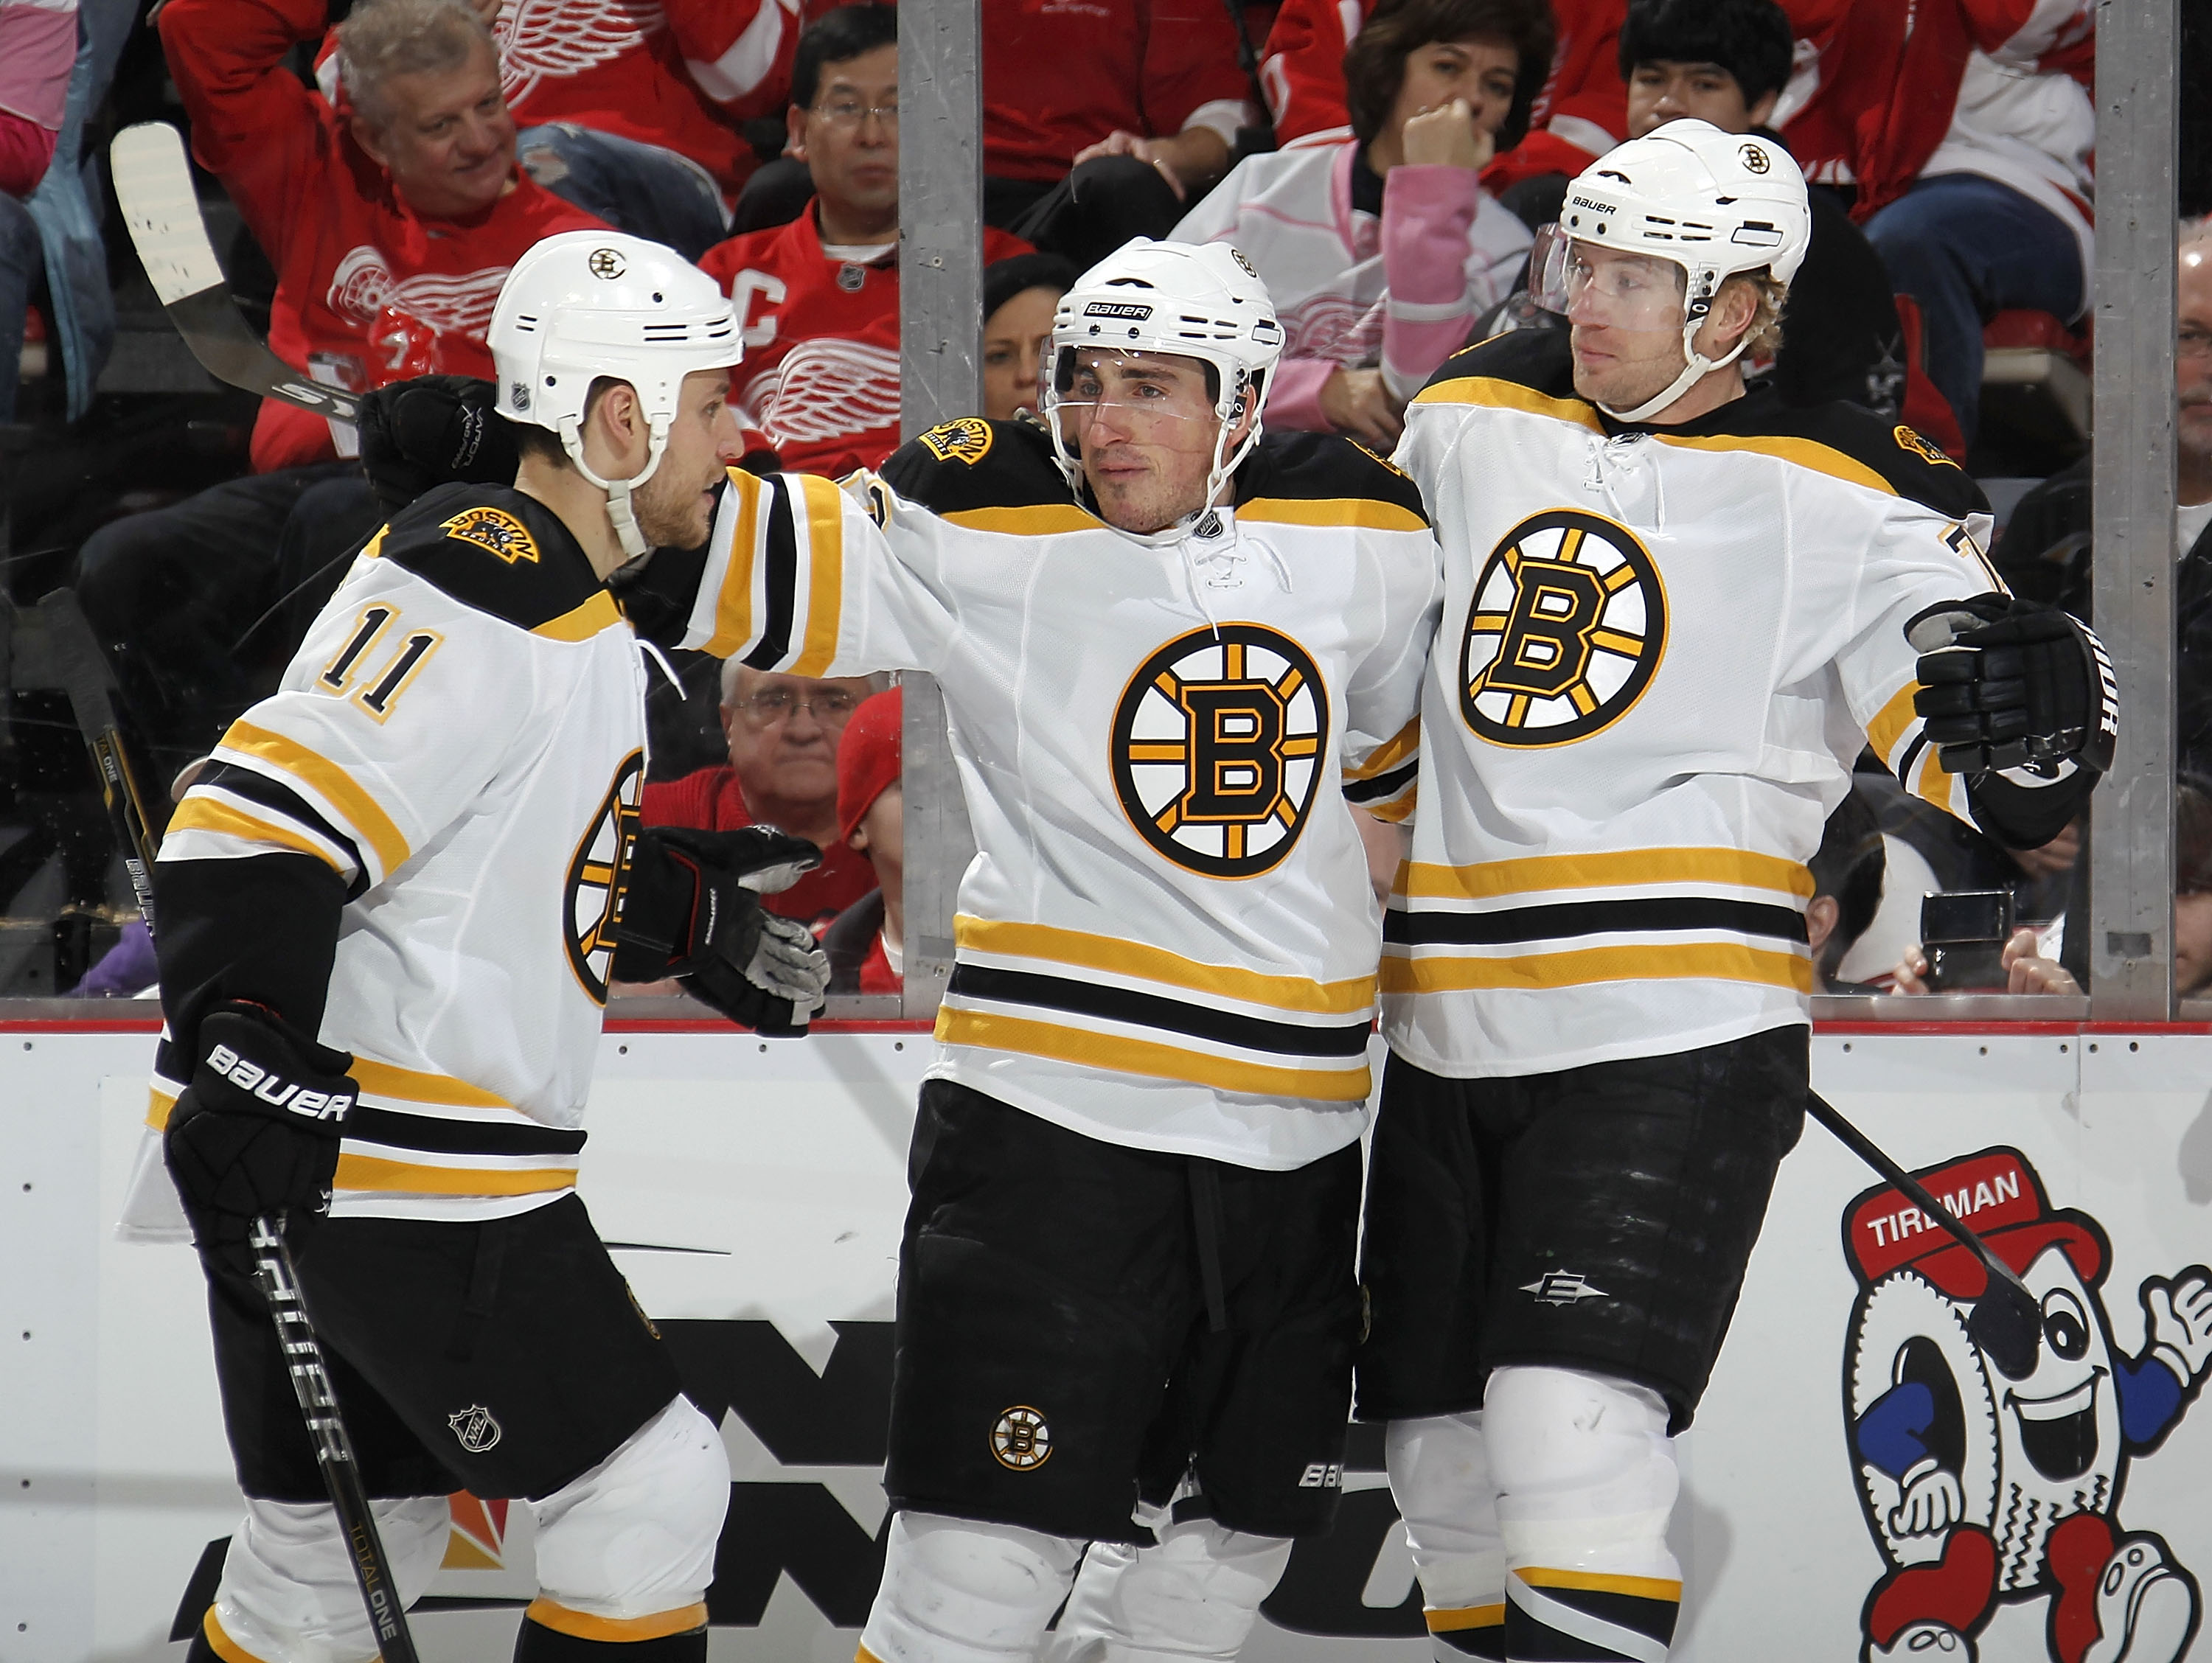 DETROIT, MI - FEBRUARY 13:  Brad Marchand #63 of the Boston Bruins celebrates a first period goal with Michael Ryder #73 and Gregory Campbell #11 while playing the Detroit Red Wings on February 13, 2011 at Joe Lewis Arena in Detroit, Michigan.  (Photo by